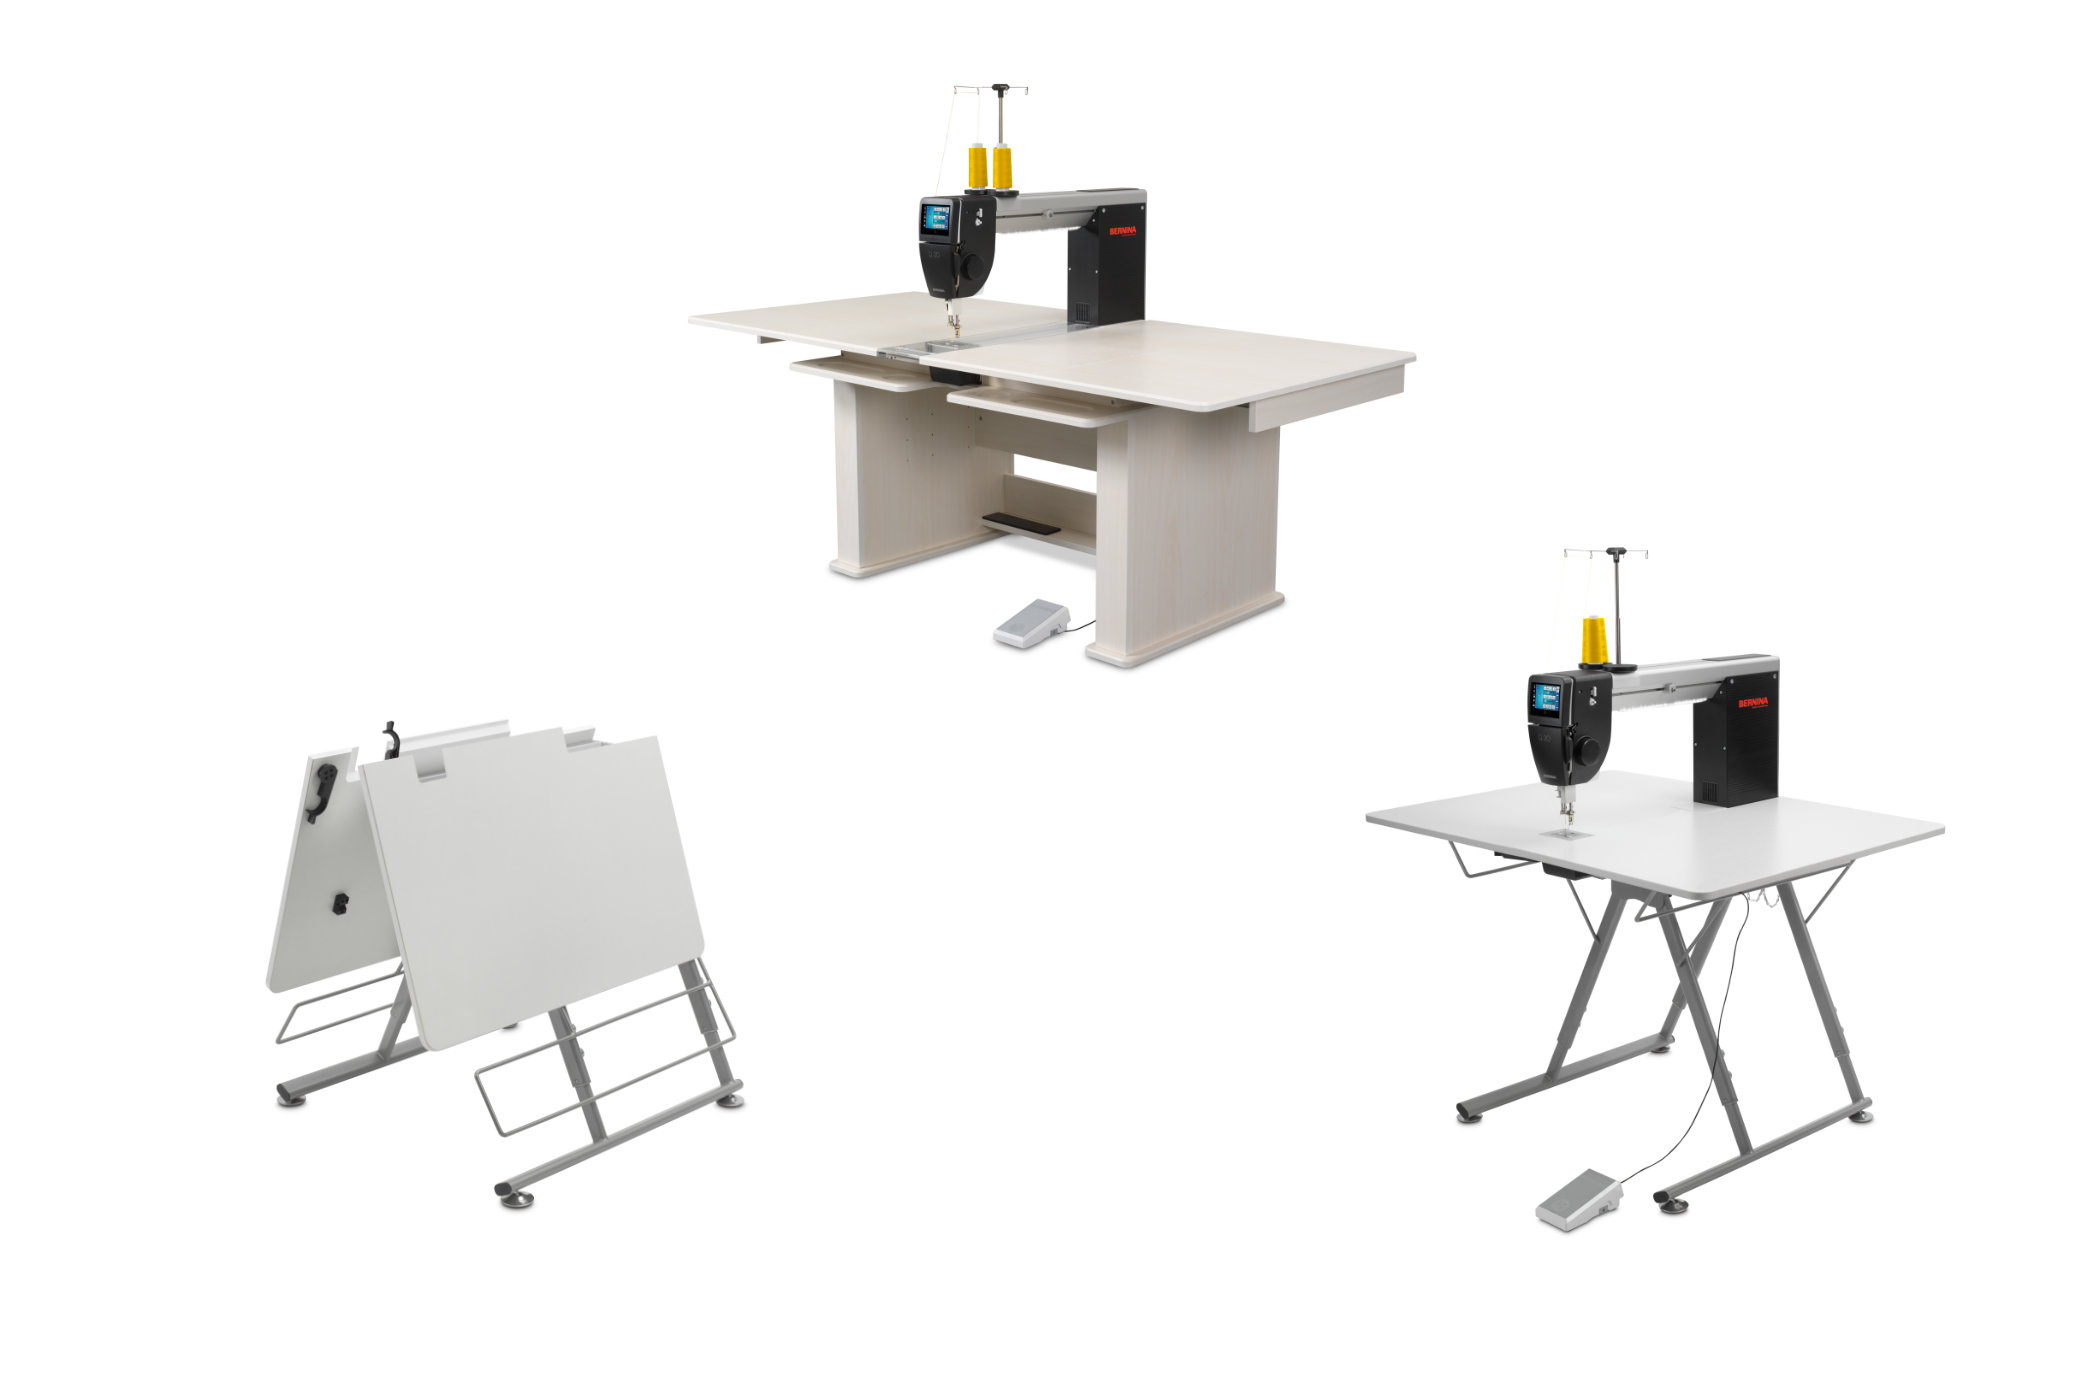 Sit Down Table Options